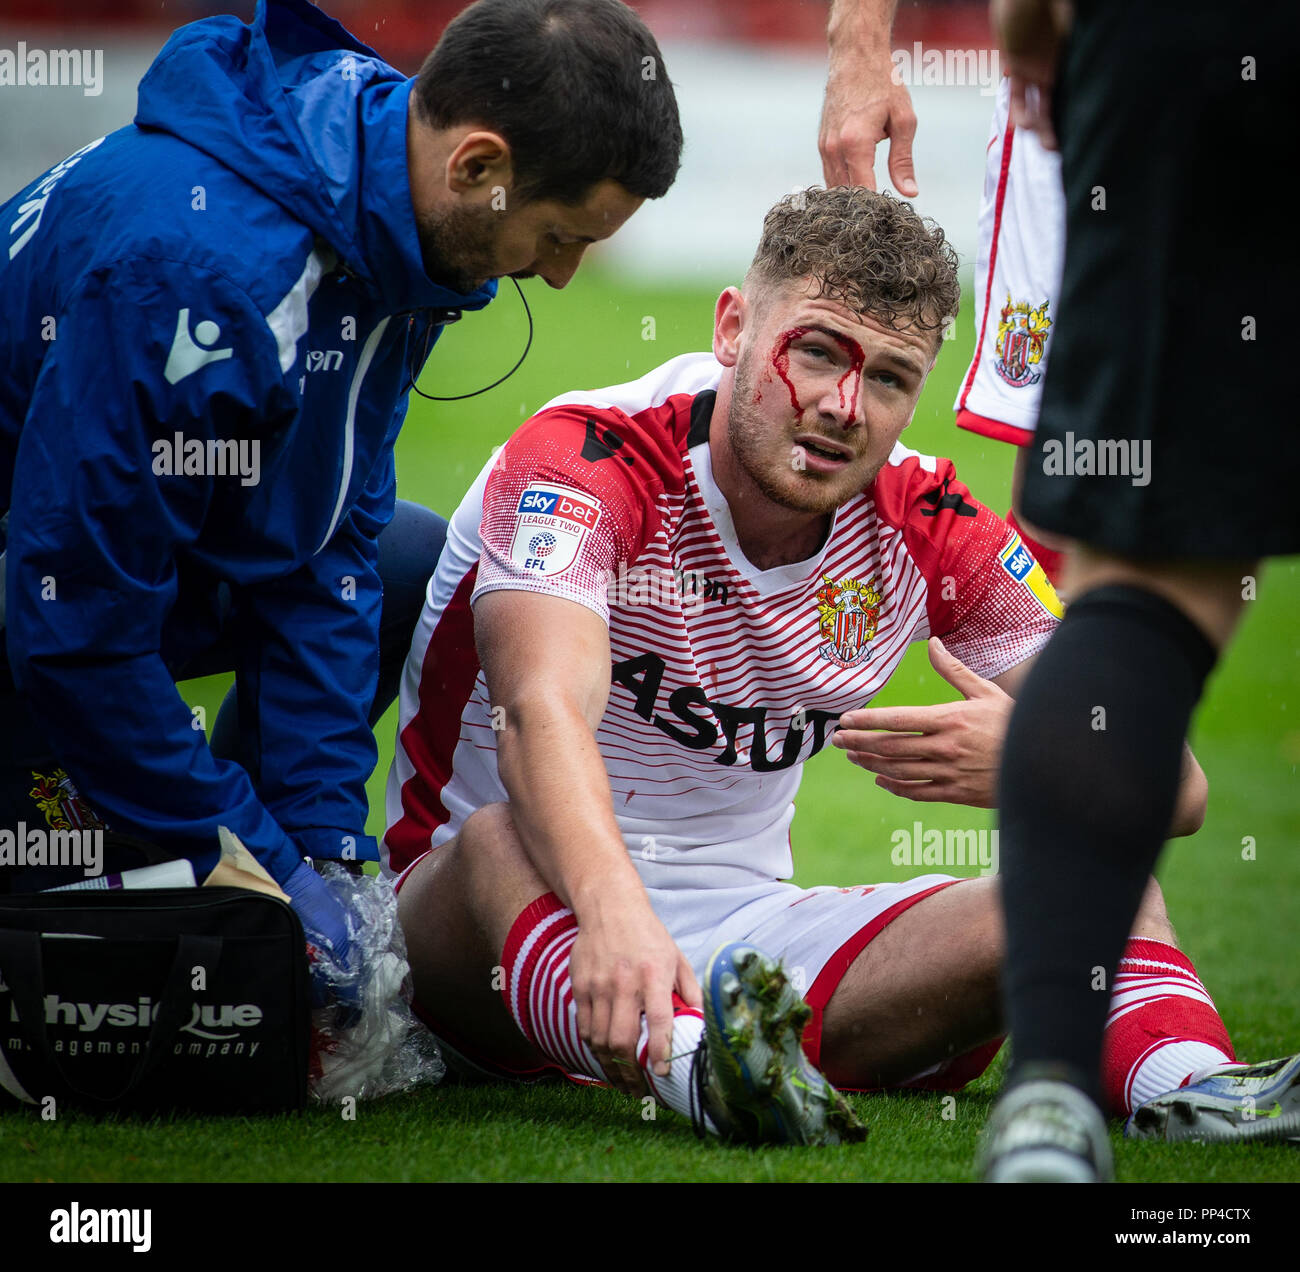 Football / soccer player receiving treatment for injury of cut above the eye football / soccer during match. - Stock Image